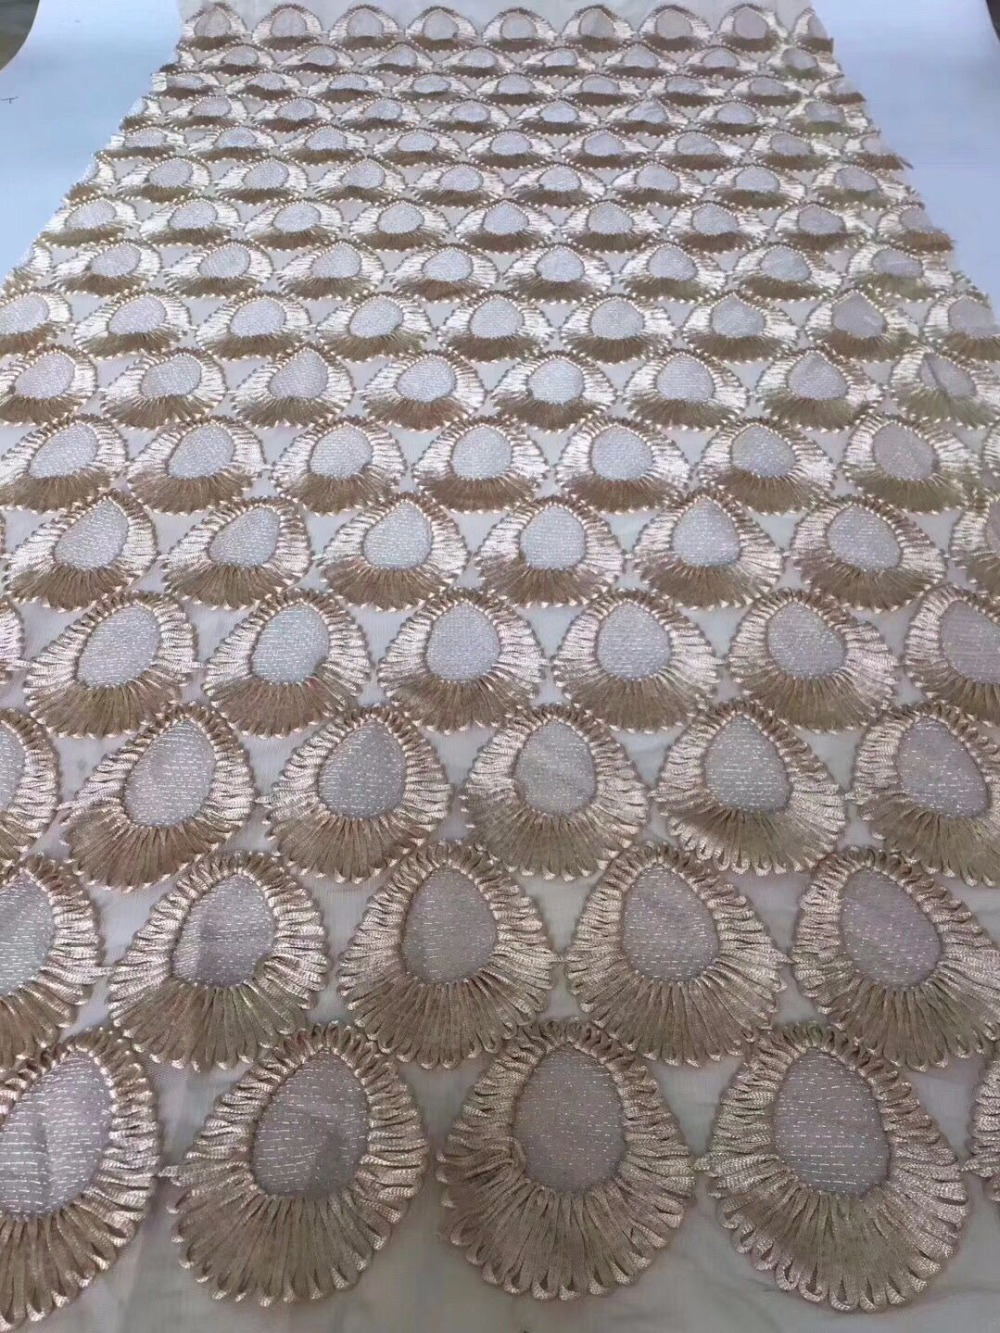 Beautiful Mesh Lace Fabric High Quality Embroidered Fabrics Fashionable 3d Lace Fabric For Wedding Dresses Tull Lace 3D-in Lace from Home & Garden    2